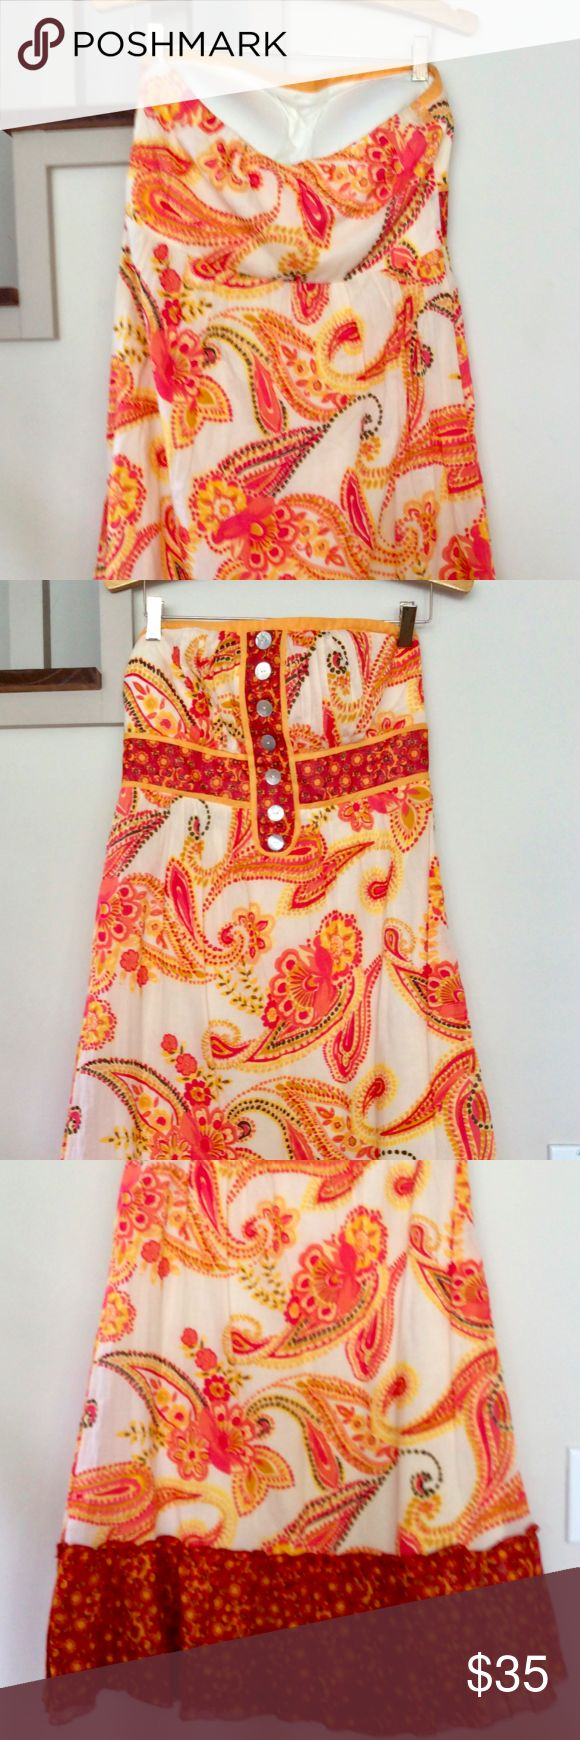 """Sangria  Orange Paisley Print Strapless SunDress Multi Floral Strapless Indian paisley Sundress in orange, red and yellow on a cream background. 6 buttons down the middle, Red Ruffle on the bottom.  Side zipper,  dress is fully lined, 100% Cotton, made in India  Size: 12. Length (shoulder to bottom edge): 36"""" . Width (from under one arm to the other): 16"""".  I think this is cut small so please read the measurements carefully.  The wide skirt is swirly and flirty.  Cool comfortable and eye…"""